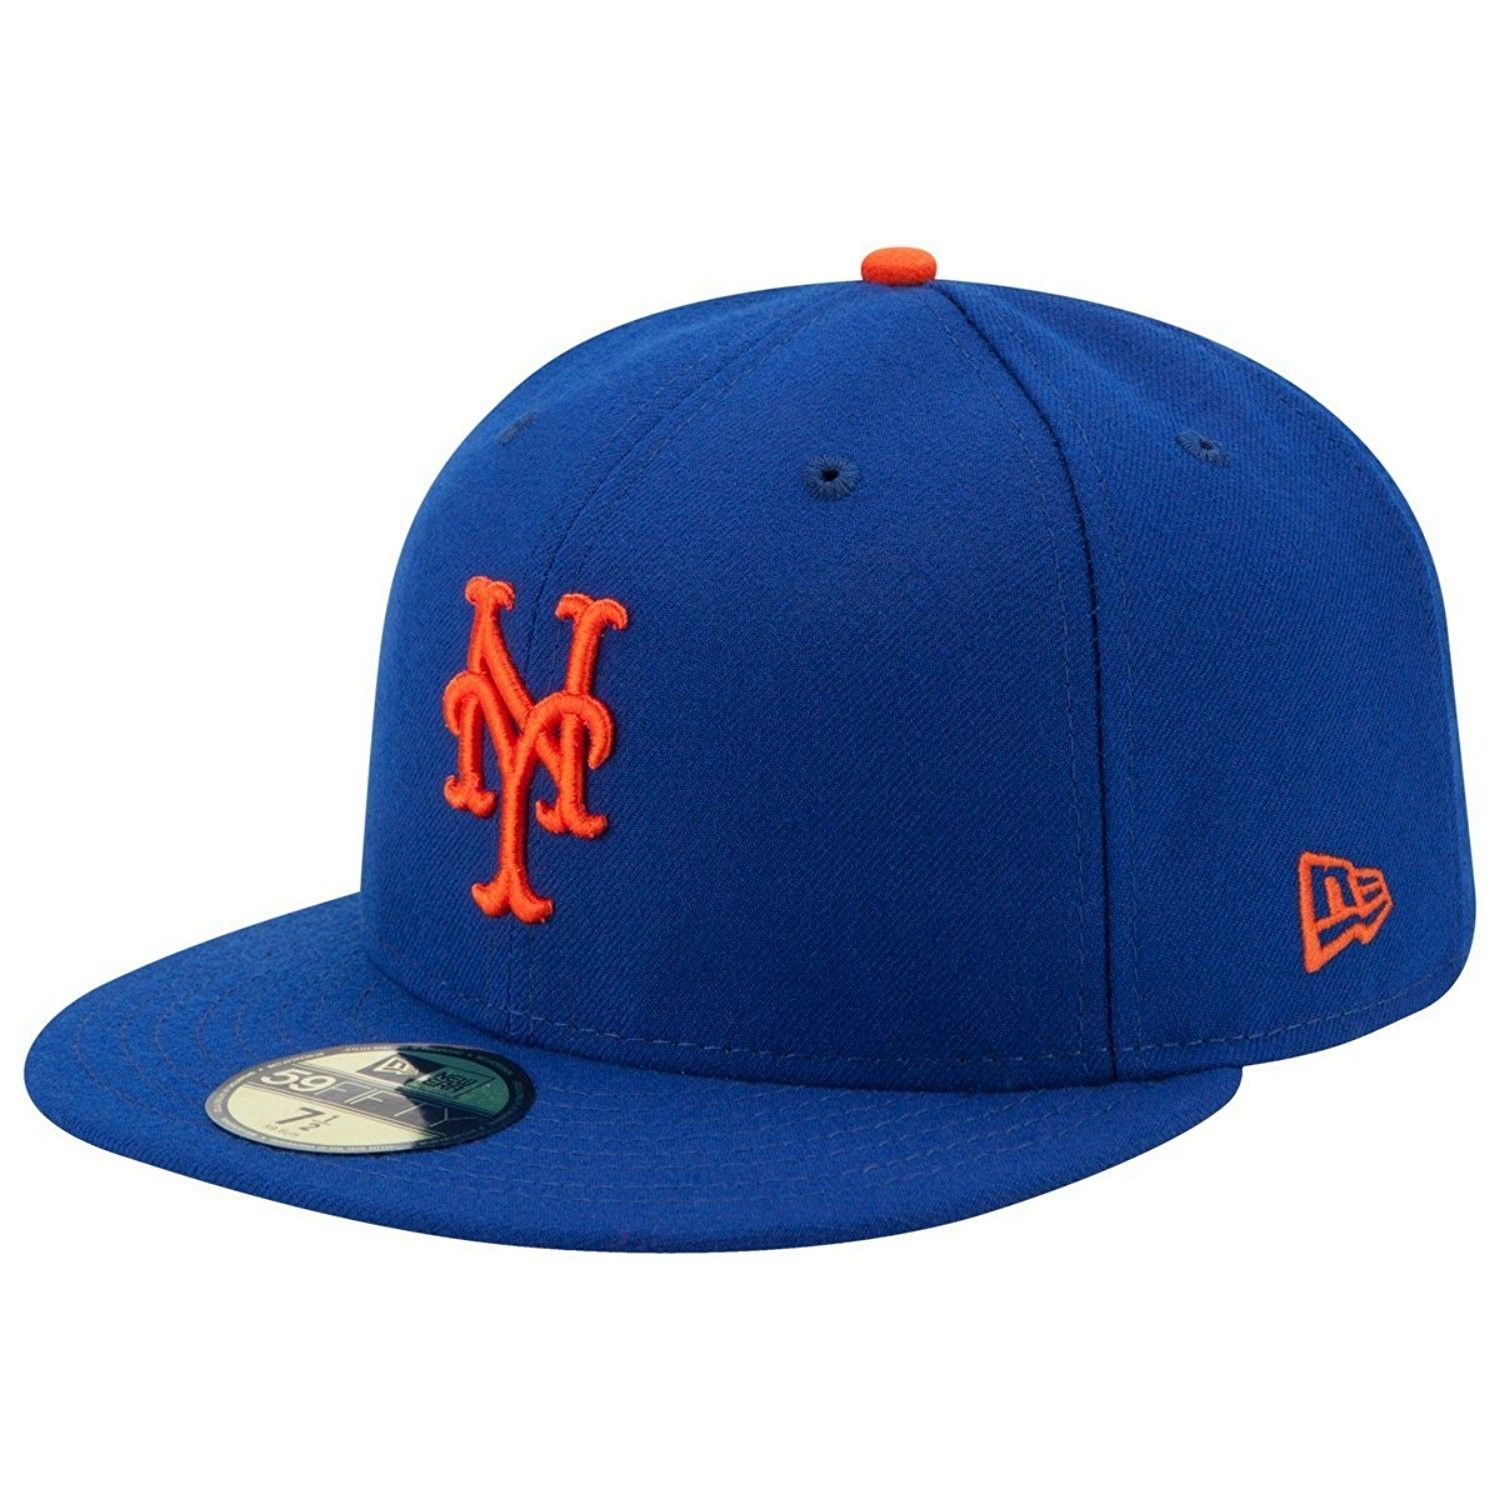 ny fitted cap blue